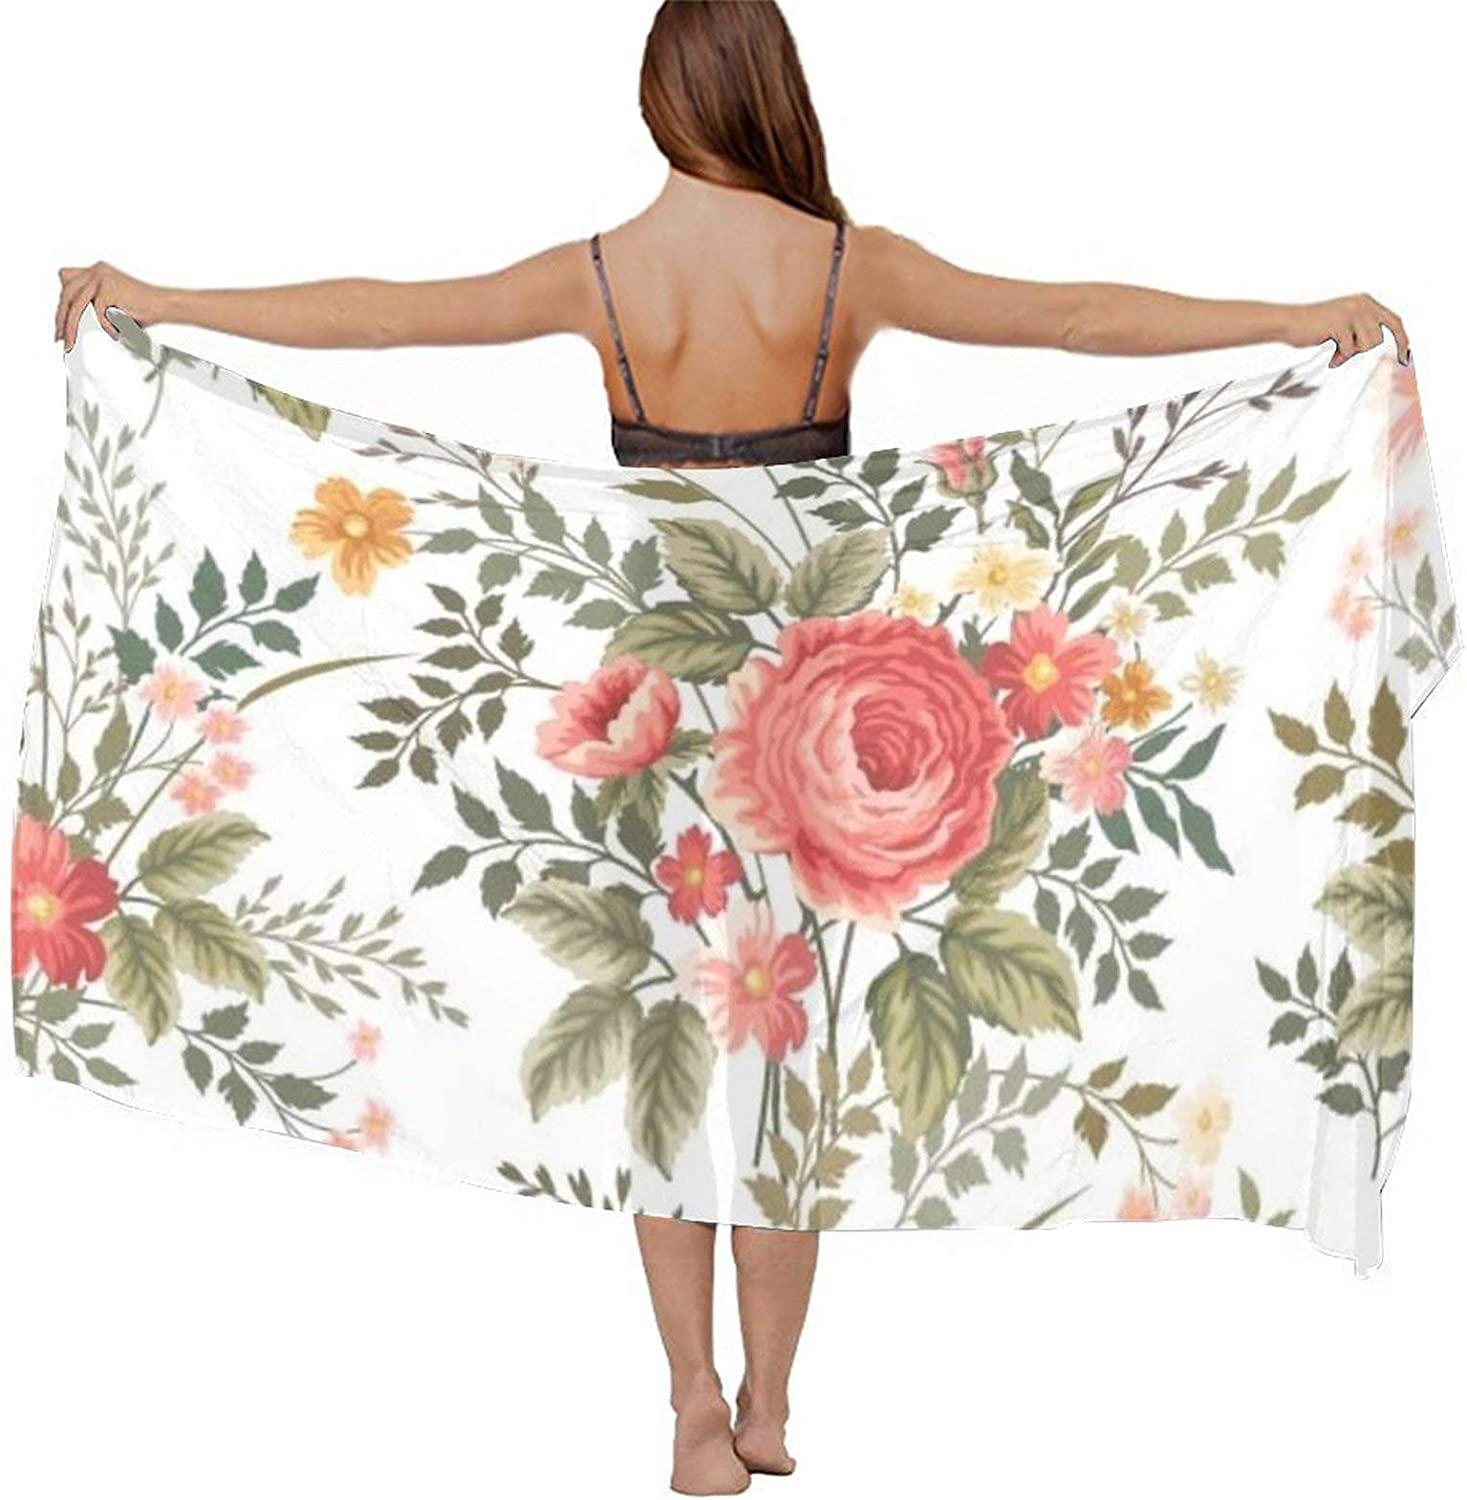 Beach Cover Up Warp Scarf Swimsuit Sarongs Summer Pareos for Park Beach Wedding, Holiday